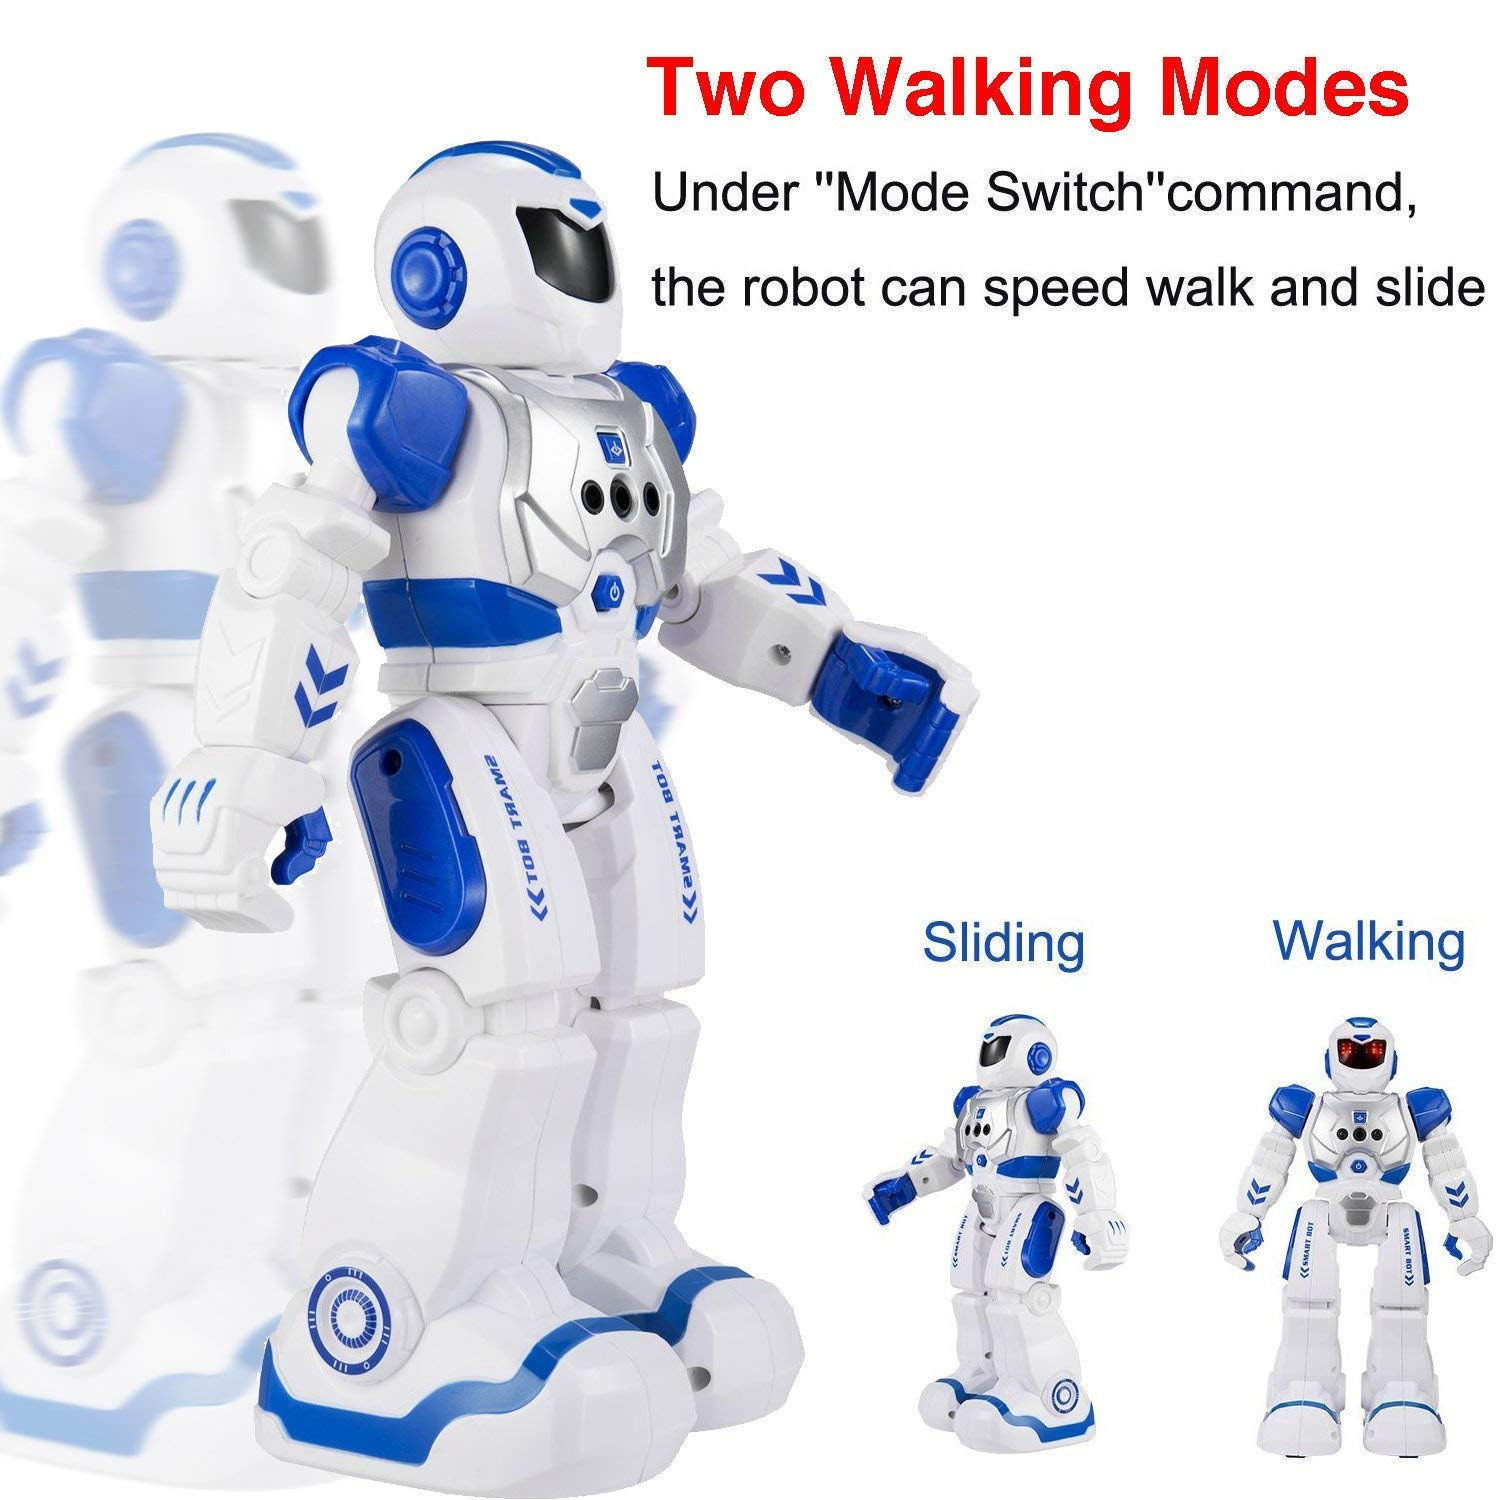 Elemusi Remote Wireless Control Robot for Kids Toys,Smart Robots with Singing,Dancing,Gesture Sensing Entertainment Robotics for Children (Blue) by Elemusi (Image #2)